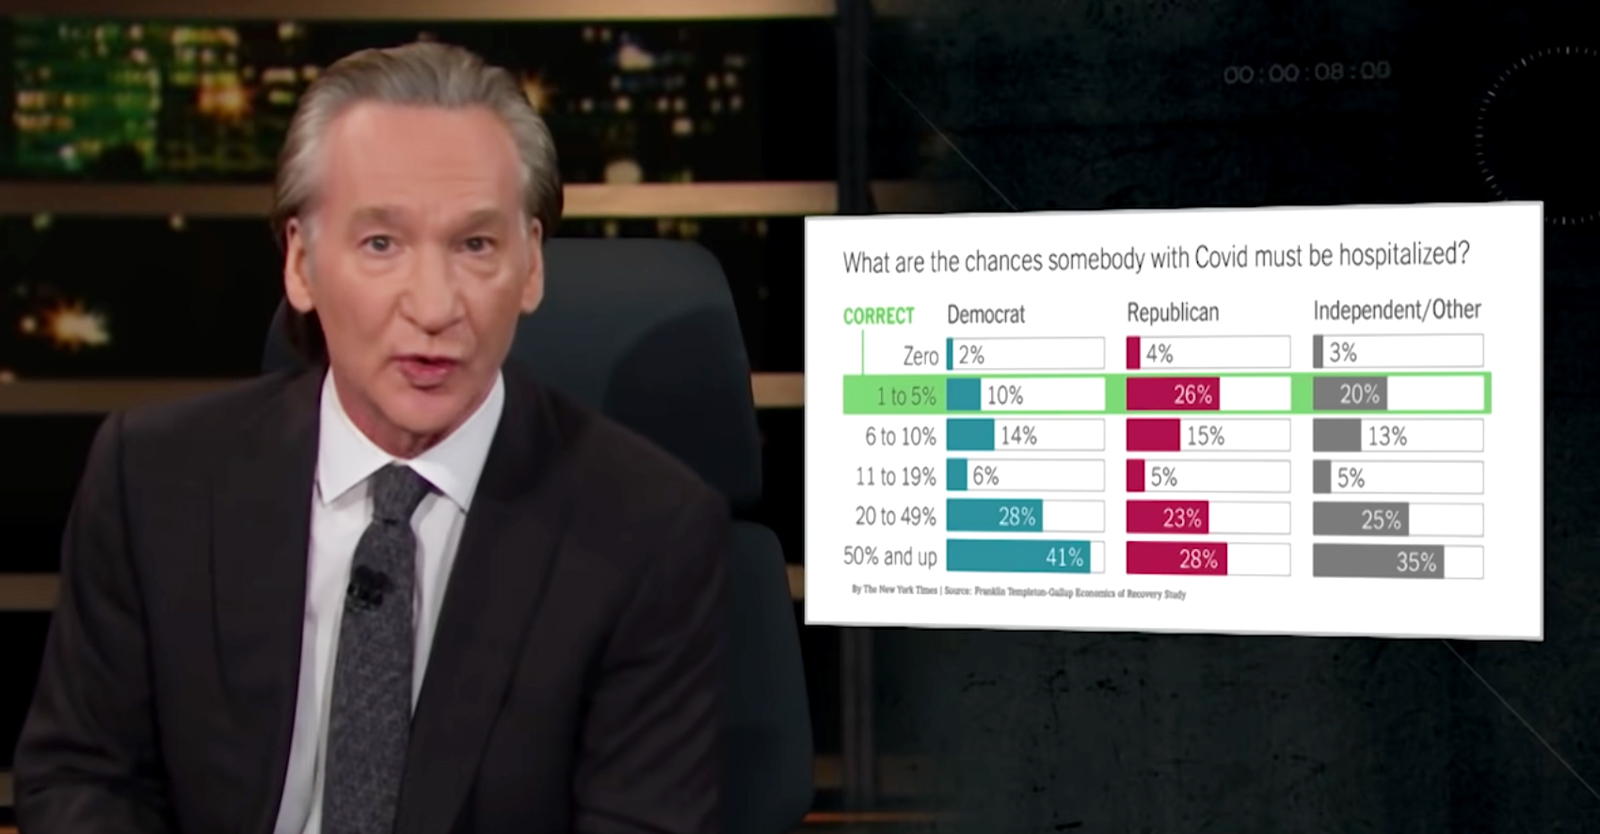 Bill Maher: 'I Don't Want Politics Mixed in With My Medical Decisions' • Children's Health Defense